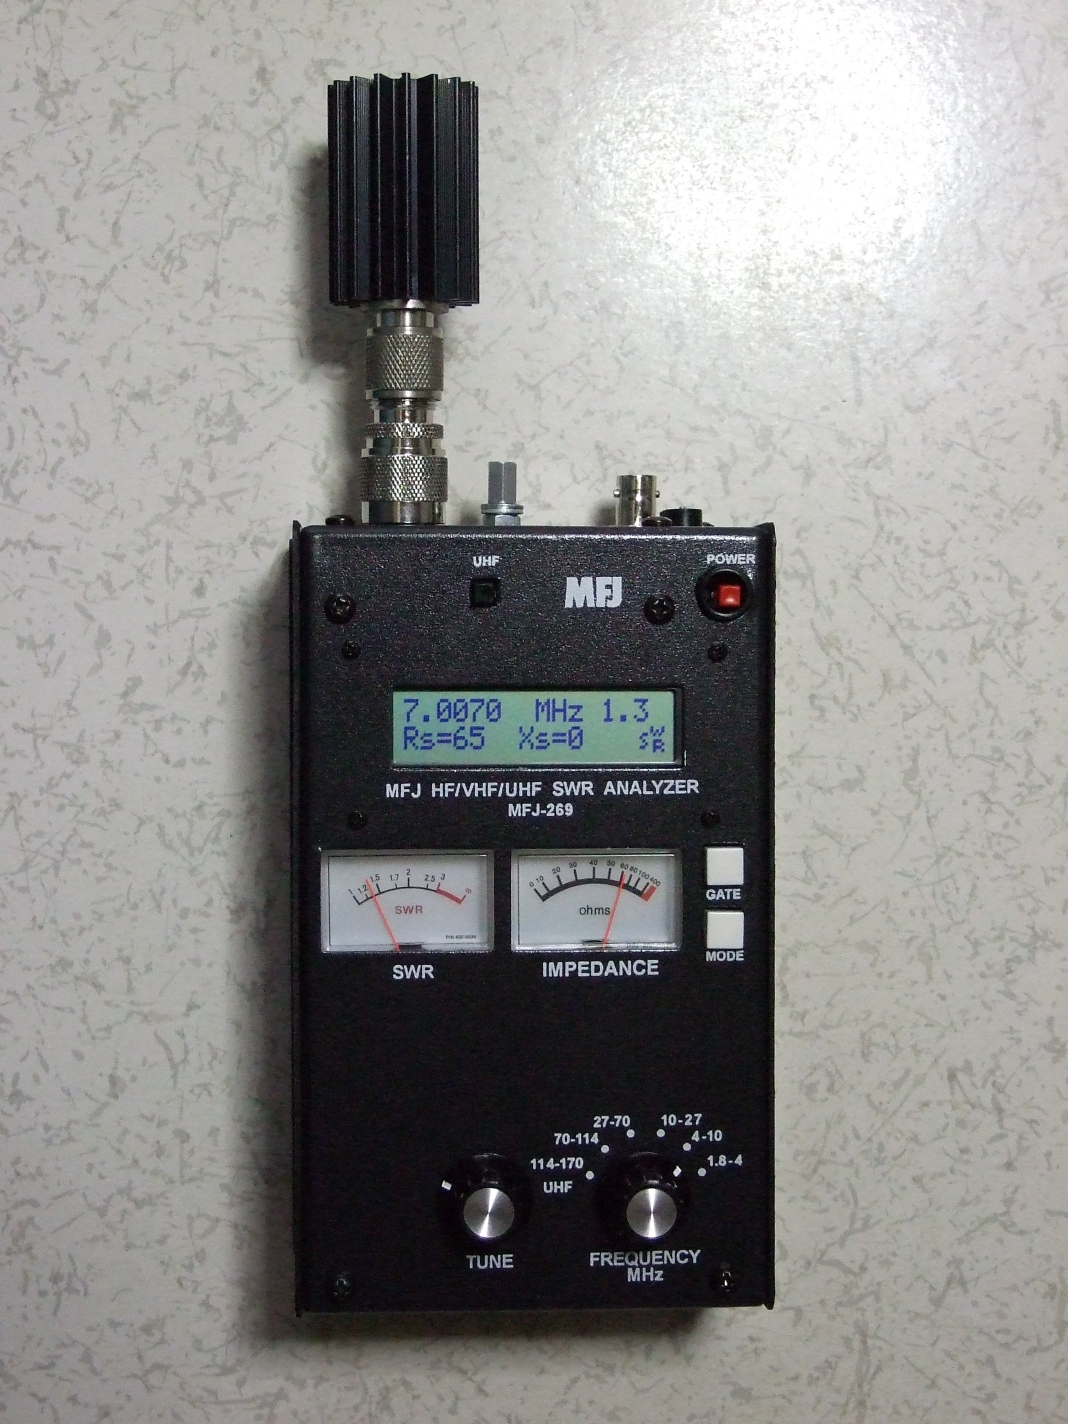 Antenna analyzer - Wikipedia